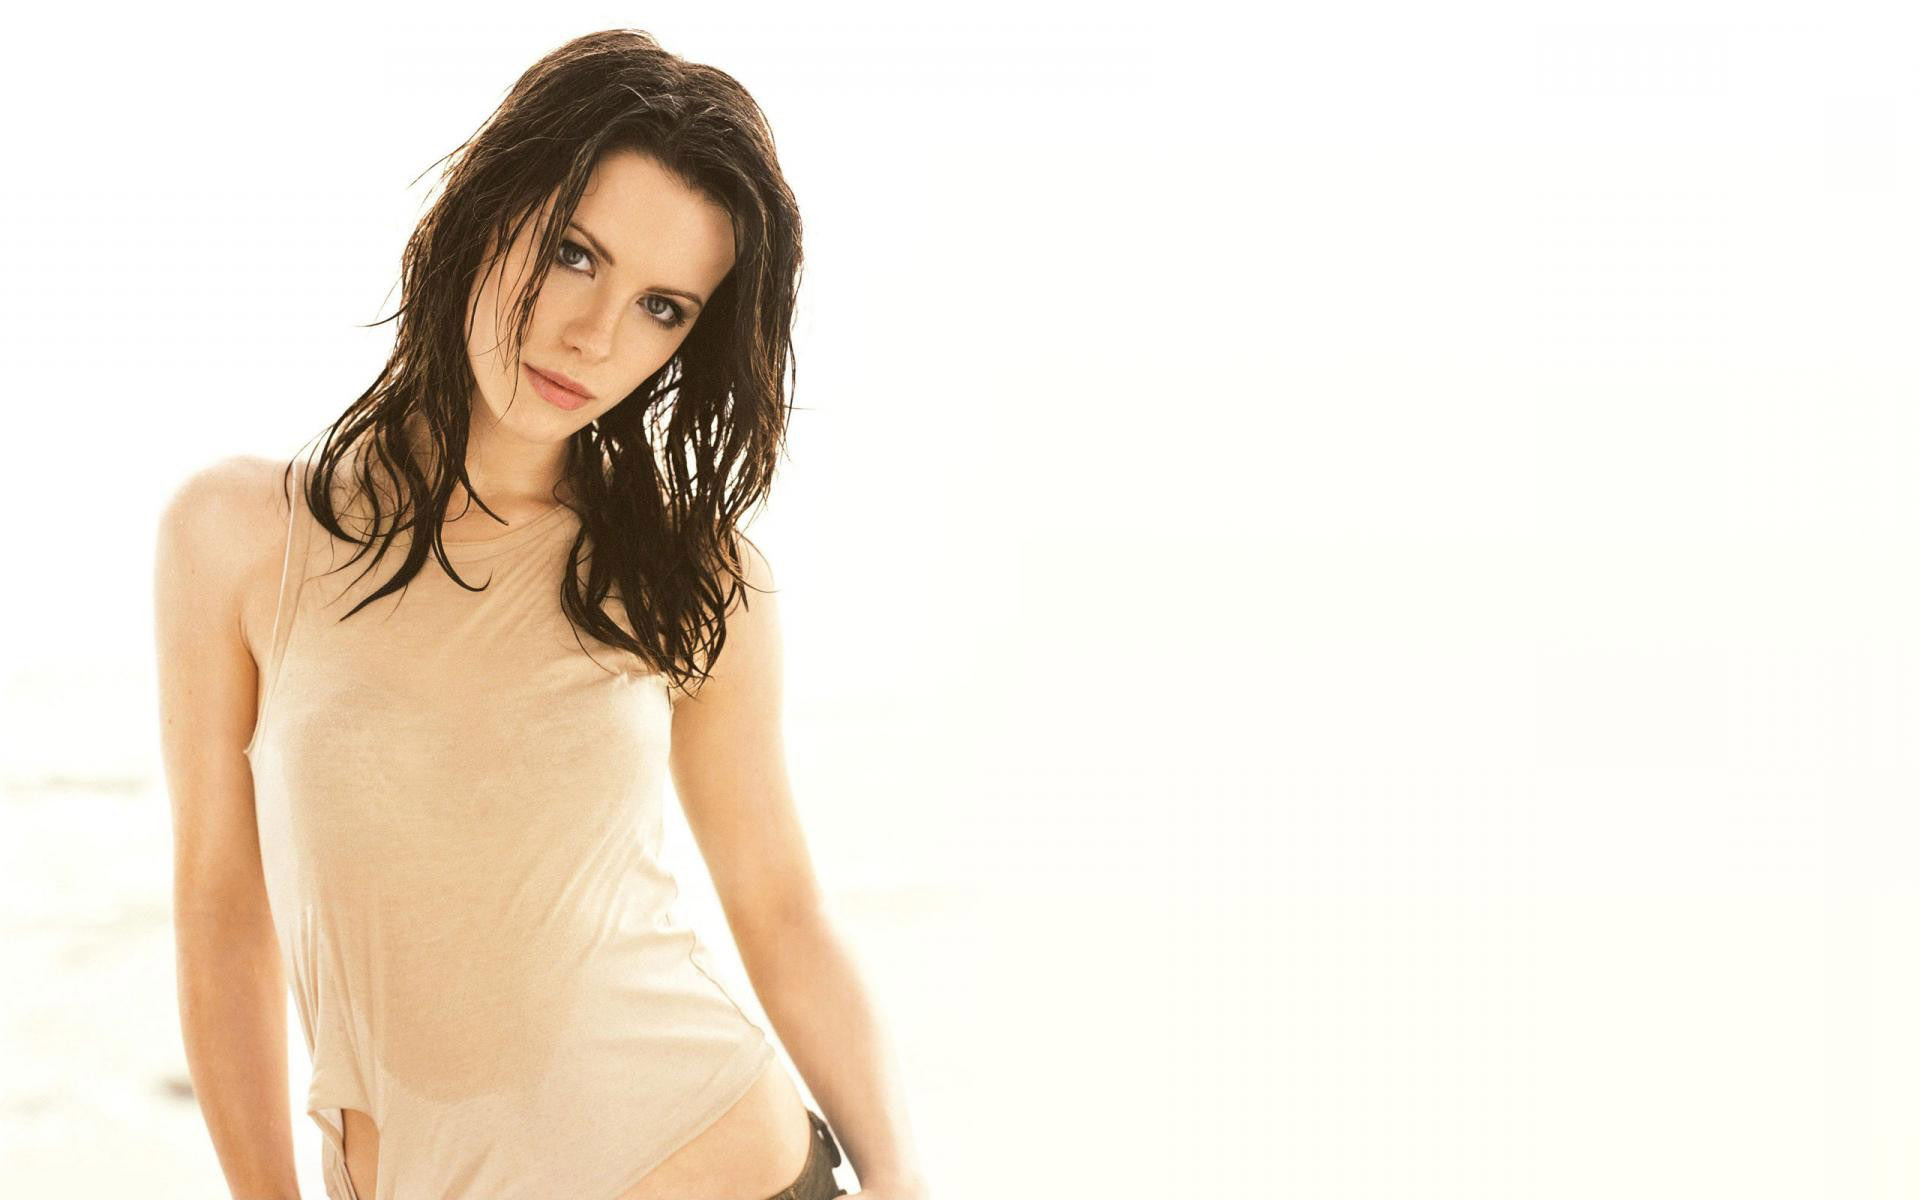 kate beckinsale wallpapers high resolution and quality